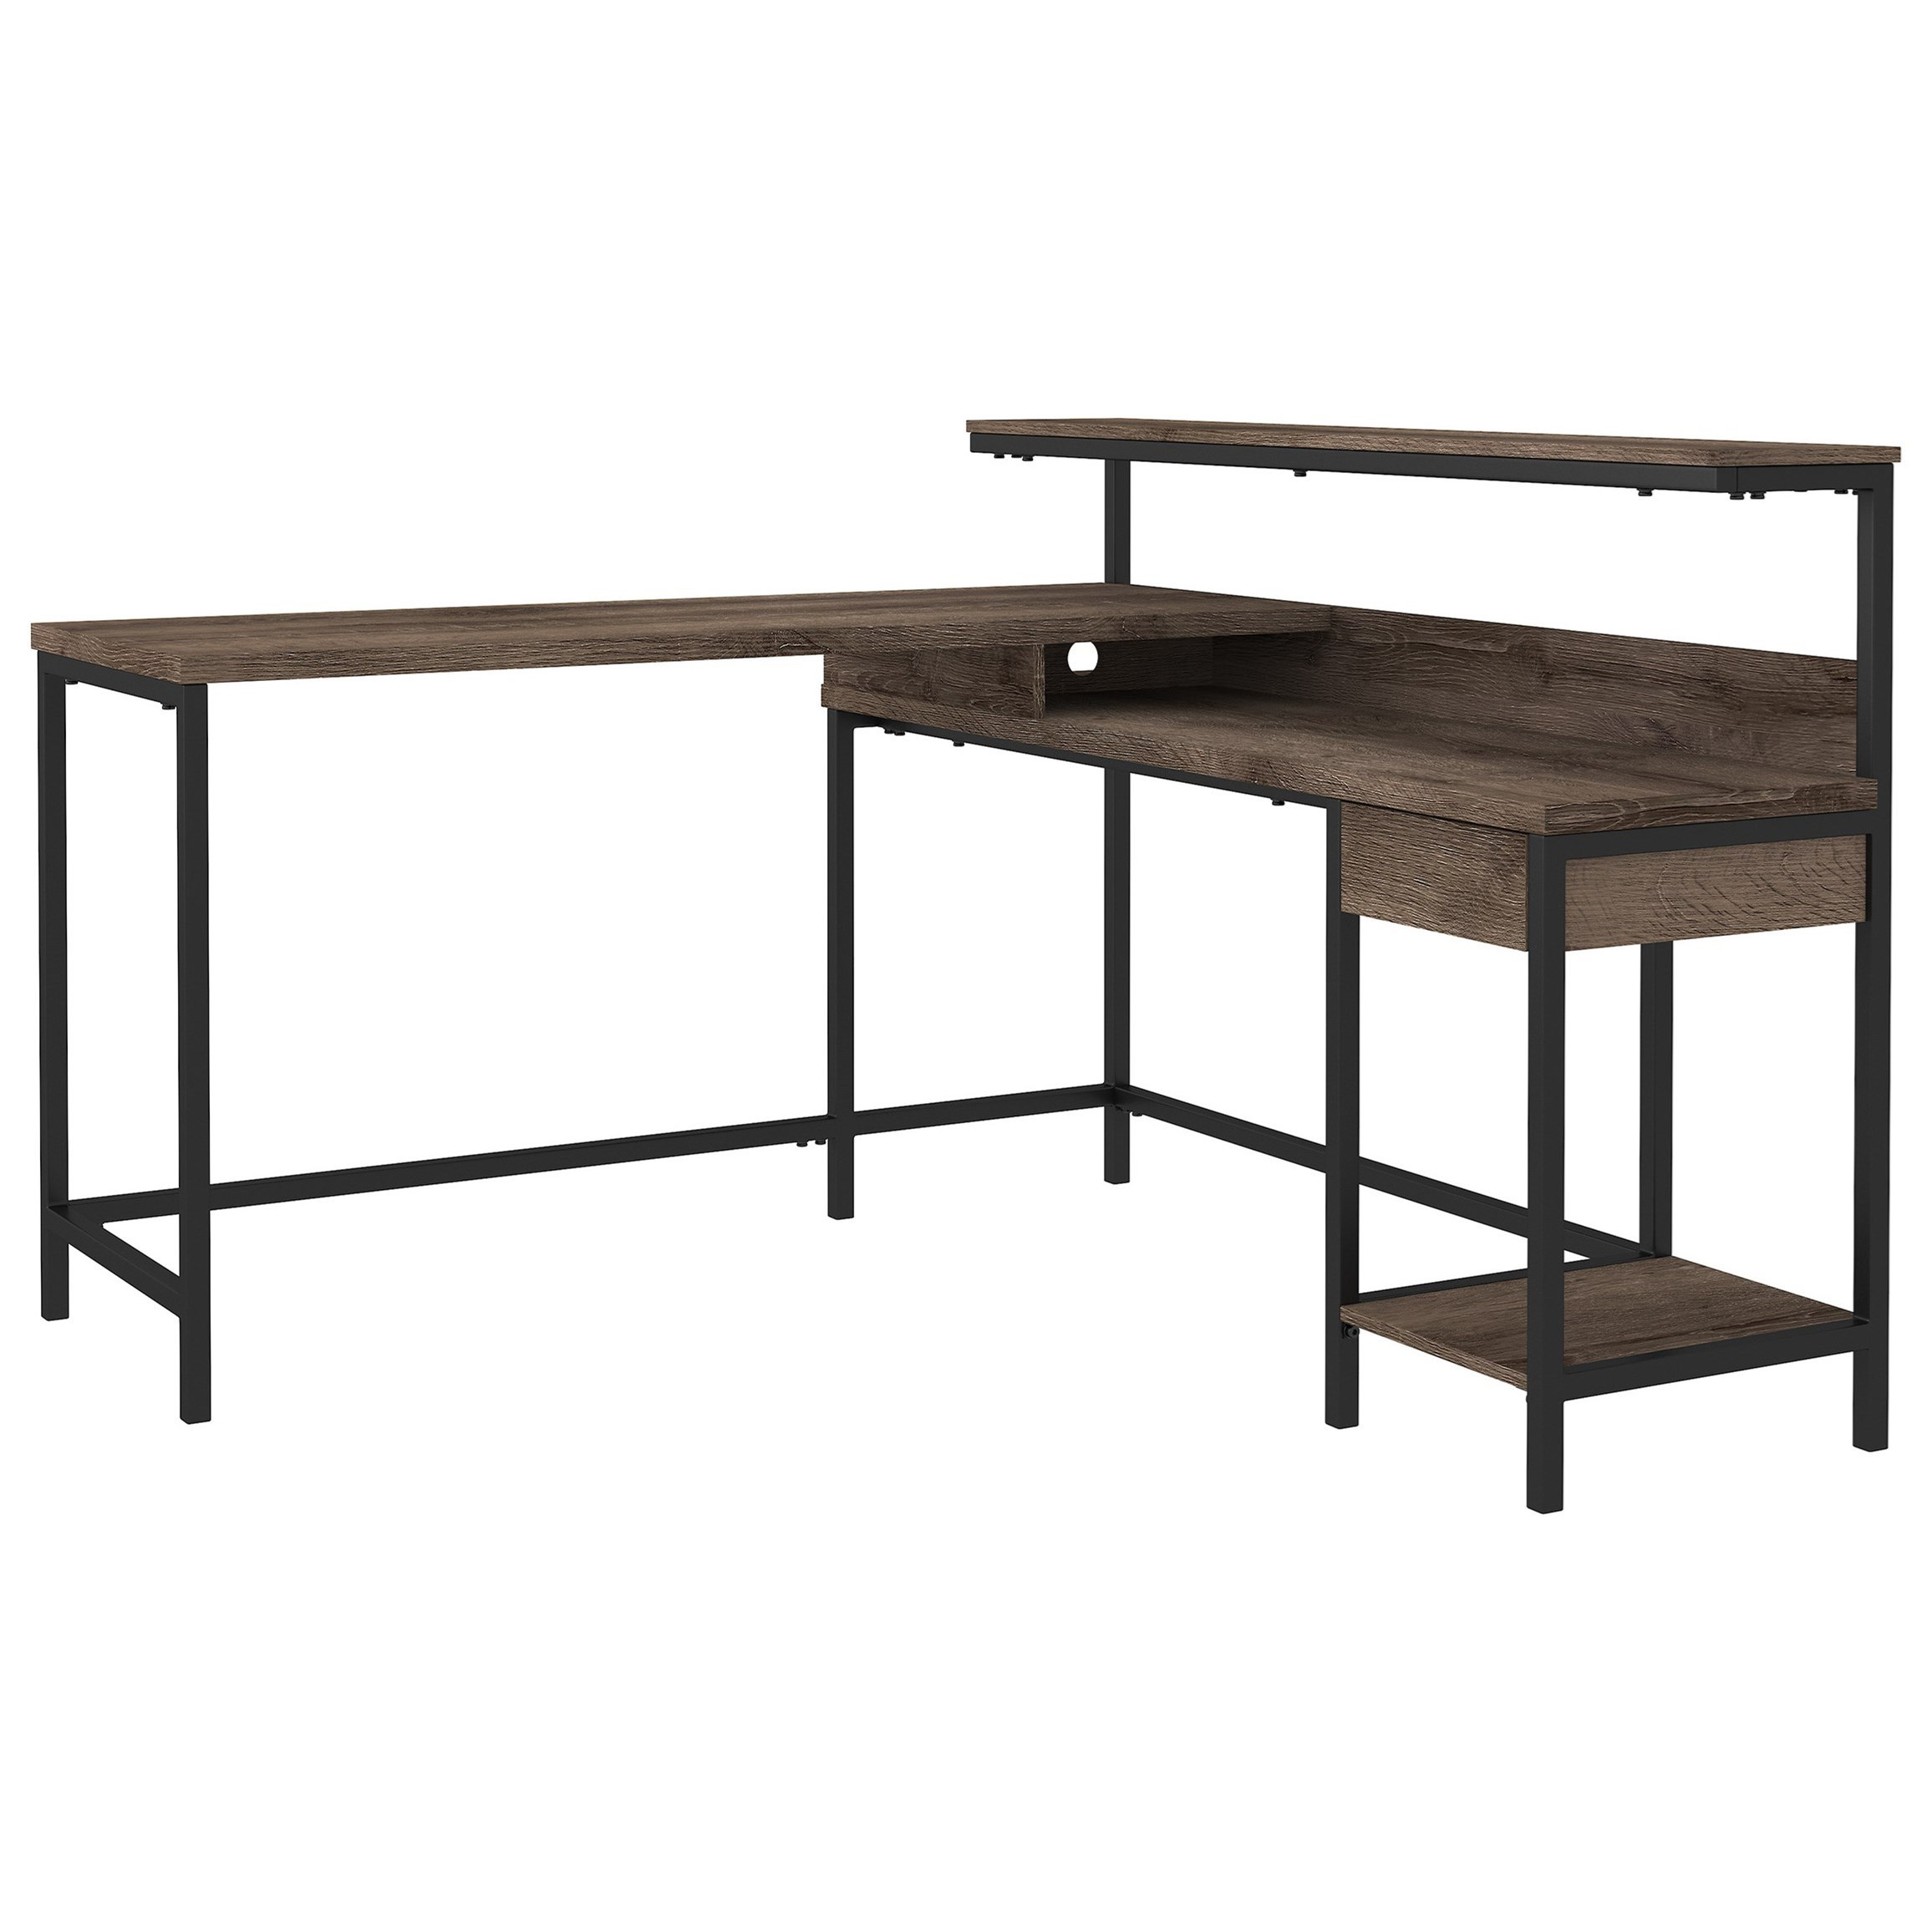 Arlenbry L-Desk with Storage by Signature Design by Ashley at Home Furnishings Direct